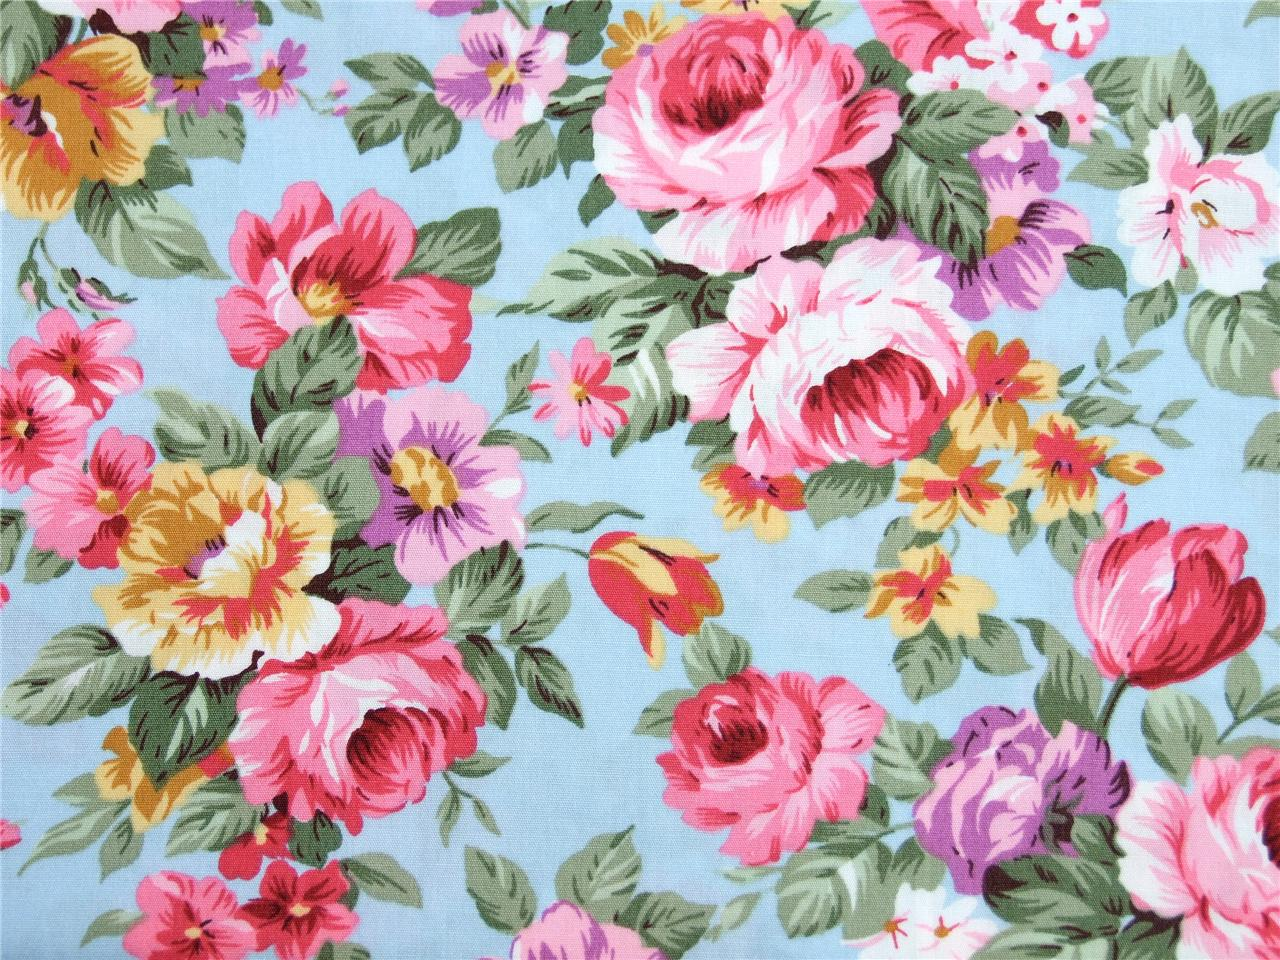 Costumes & Dress Up Party Ideas & Recipes. Floral Material Fabrics. Store availability. Search your store by entering zip code or city, state. Go. Sort. Product - Fleece Printed Fabric FLORAL SKULL BLACK / 58